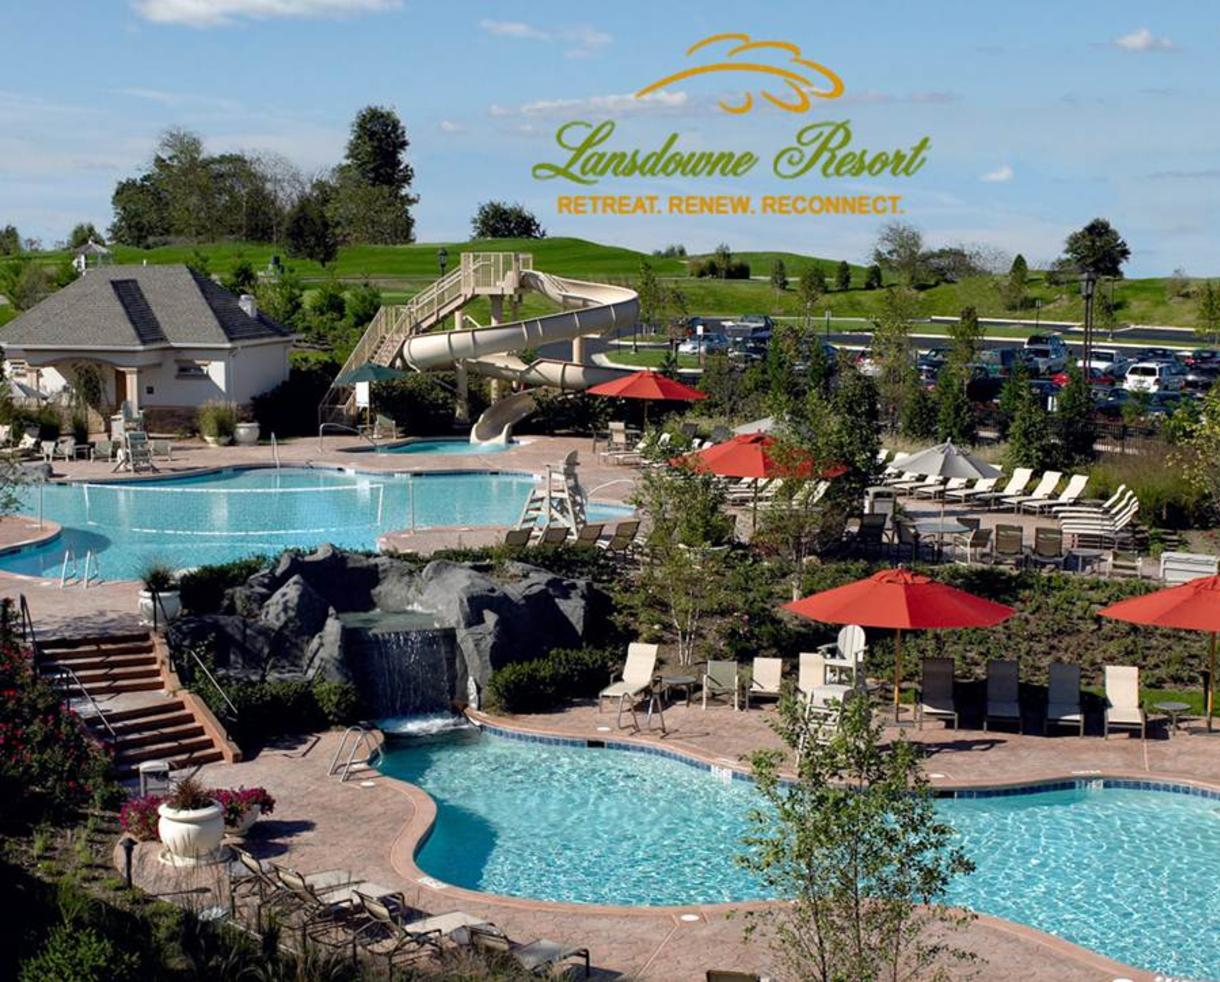 Lansdowne resort overnight stay 99 night for multiple - Hotels in lansdowne with swimming pool ...